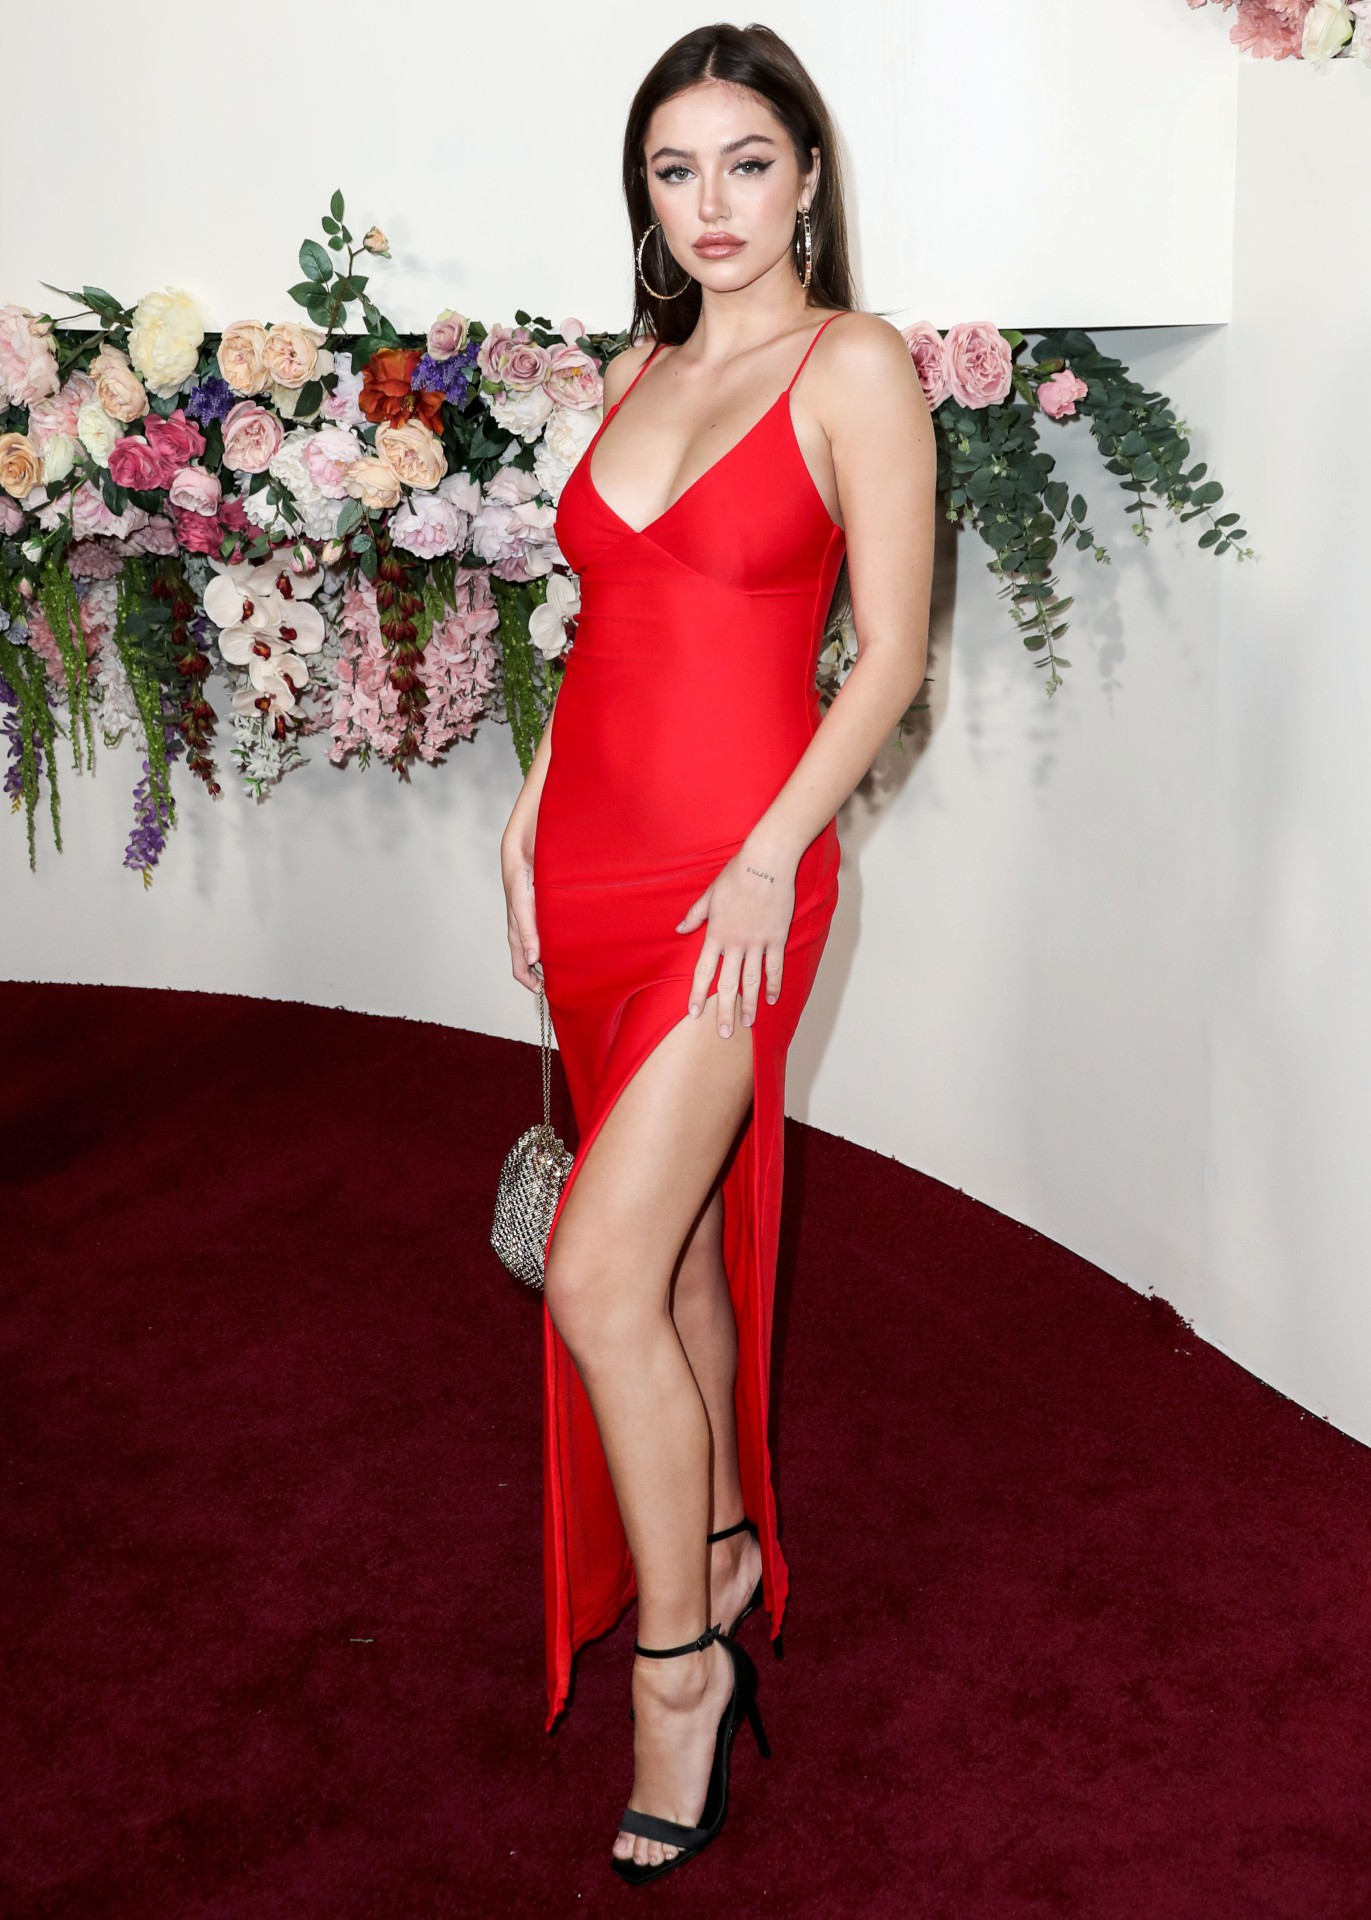 Delilah Belle Hamlin Sexy Red Dress